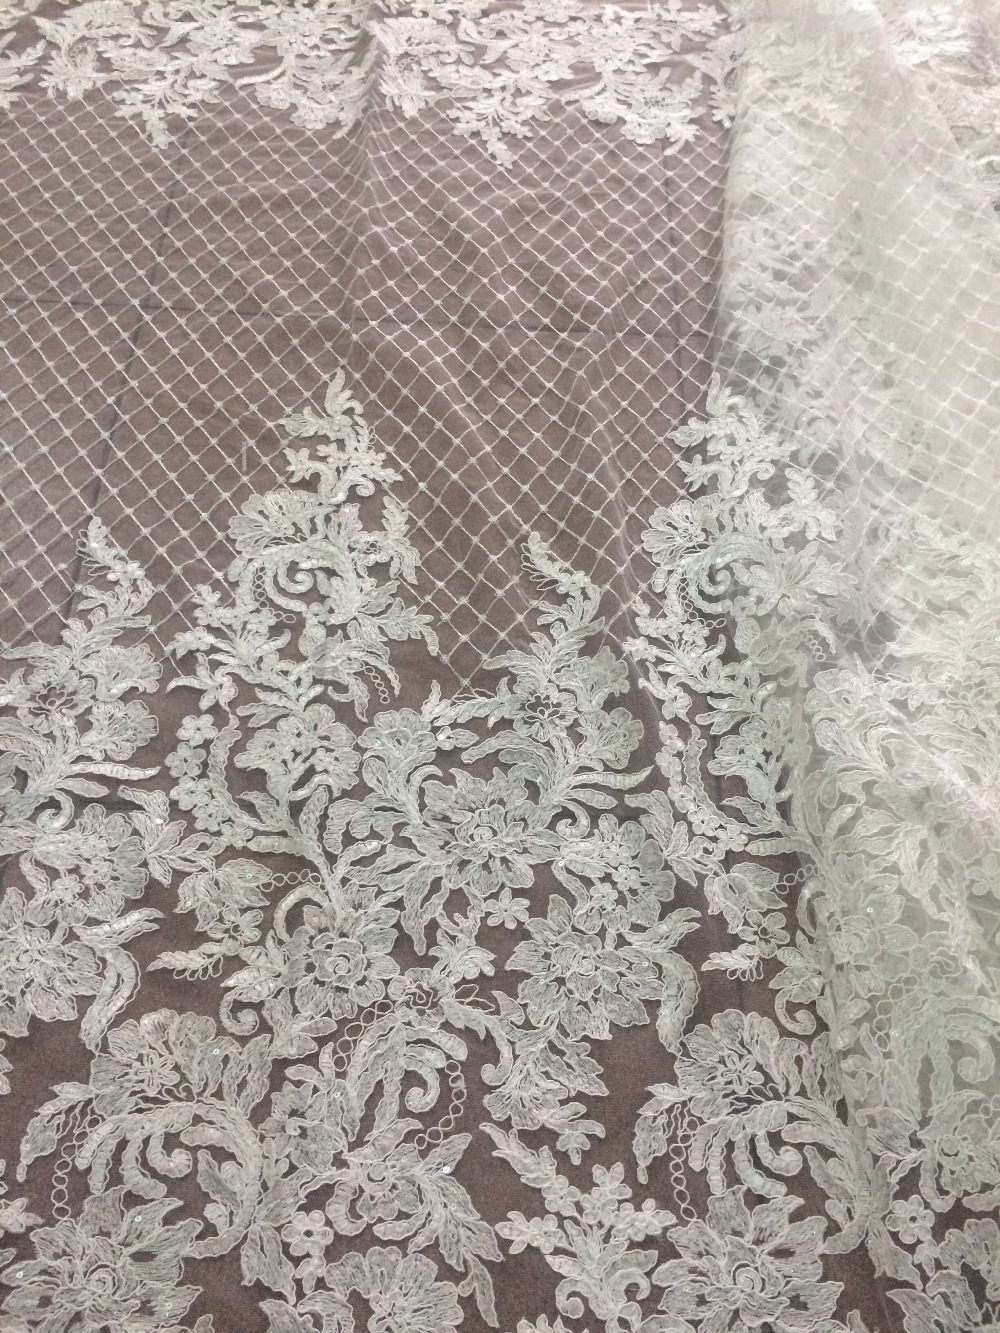 Fashion embroidered In Switzerland New Arrival LJY 6910 African Cord Net Lace Fabric with sequins for